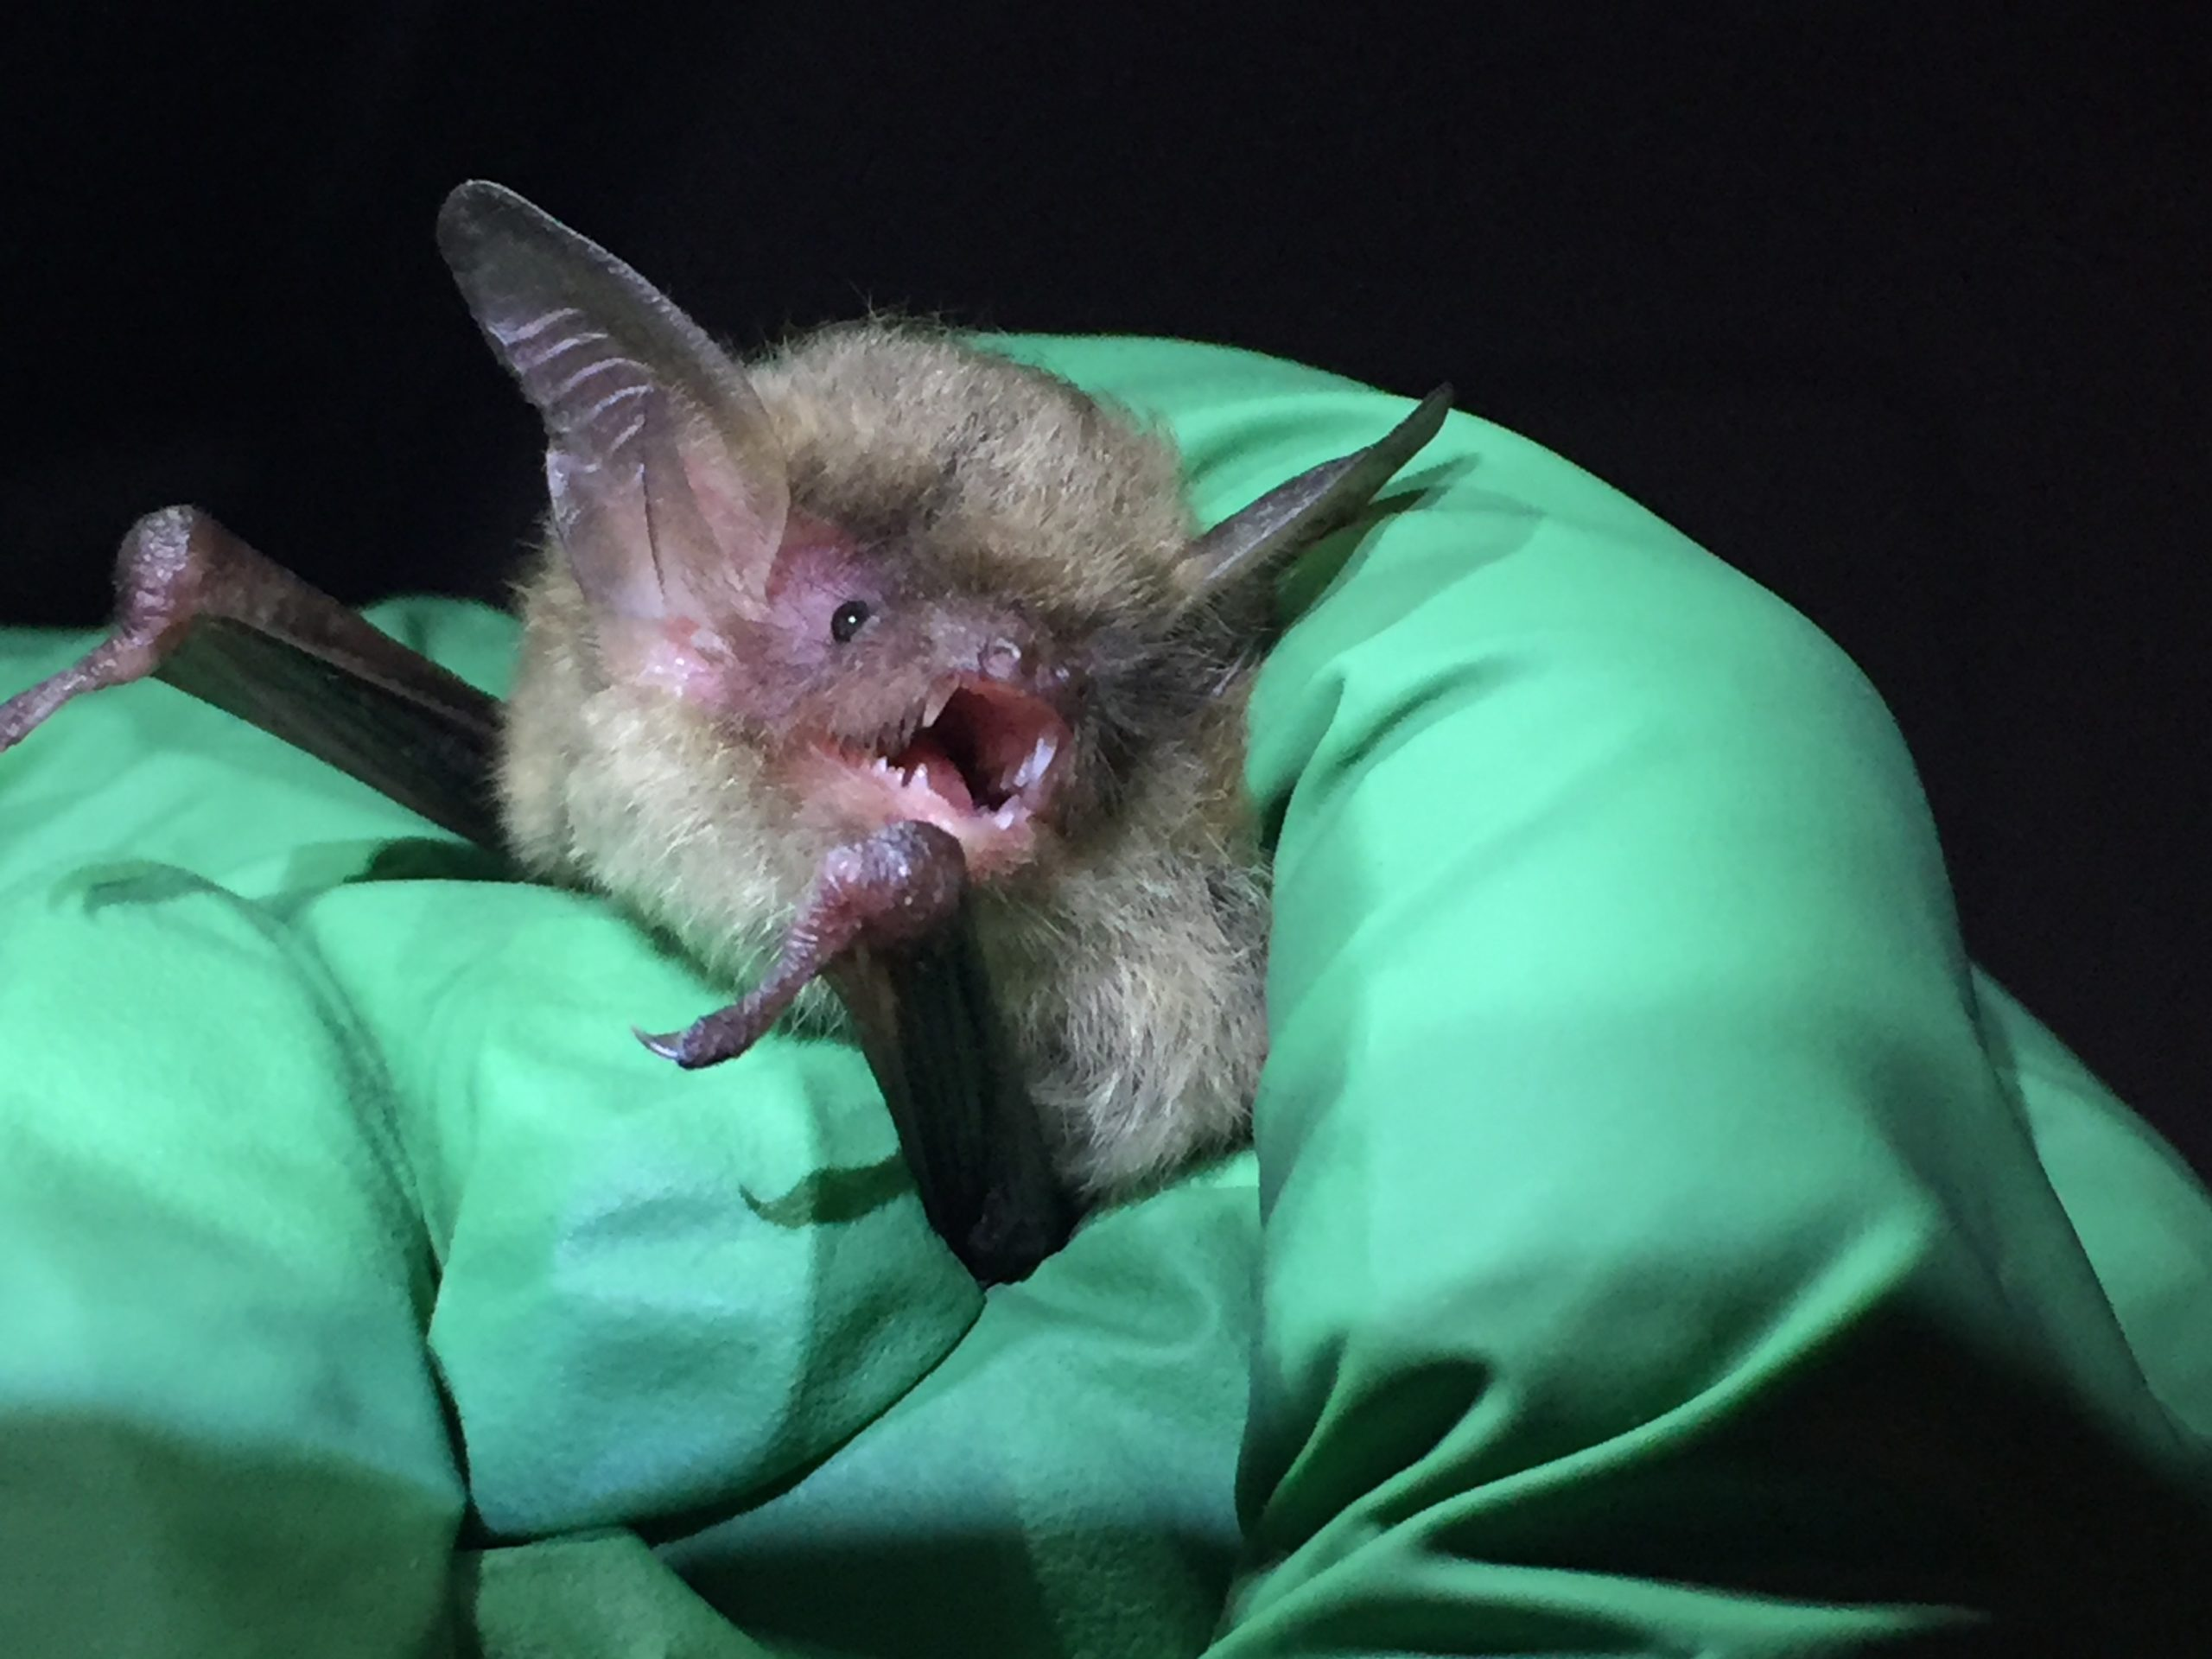 A captured northern long-eared bat waiting to be sampled for Pd (Pseudogymnoascus destructans) or white-nose syndrome.